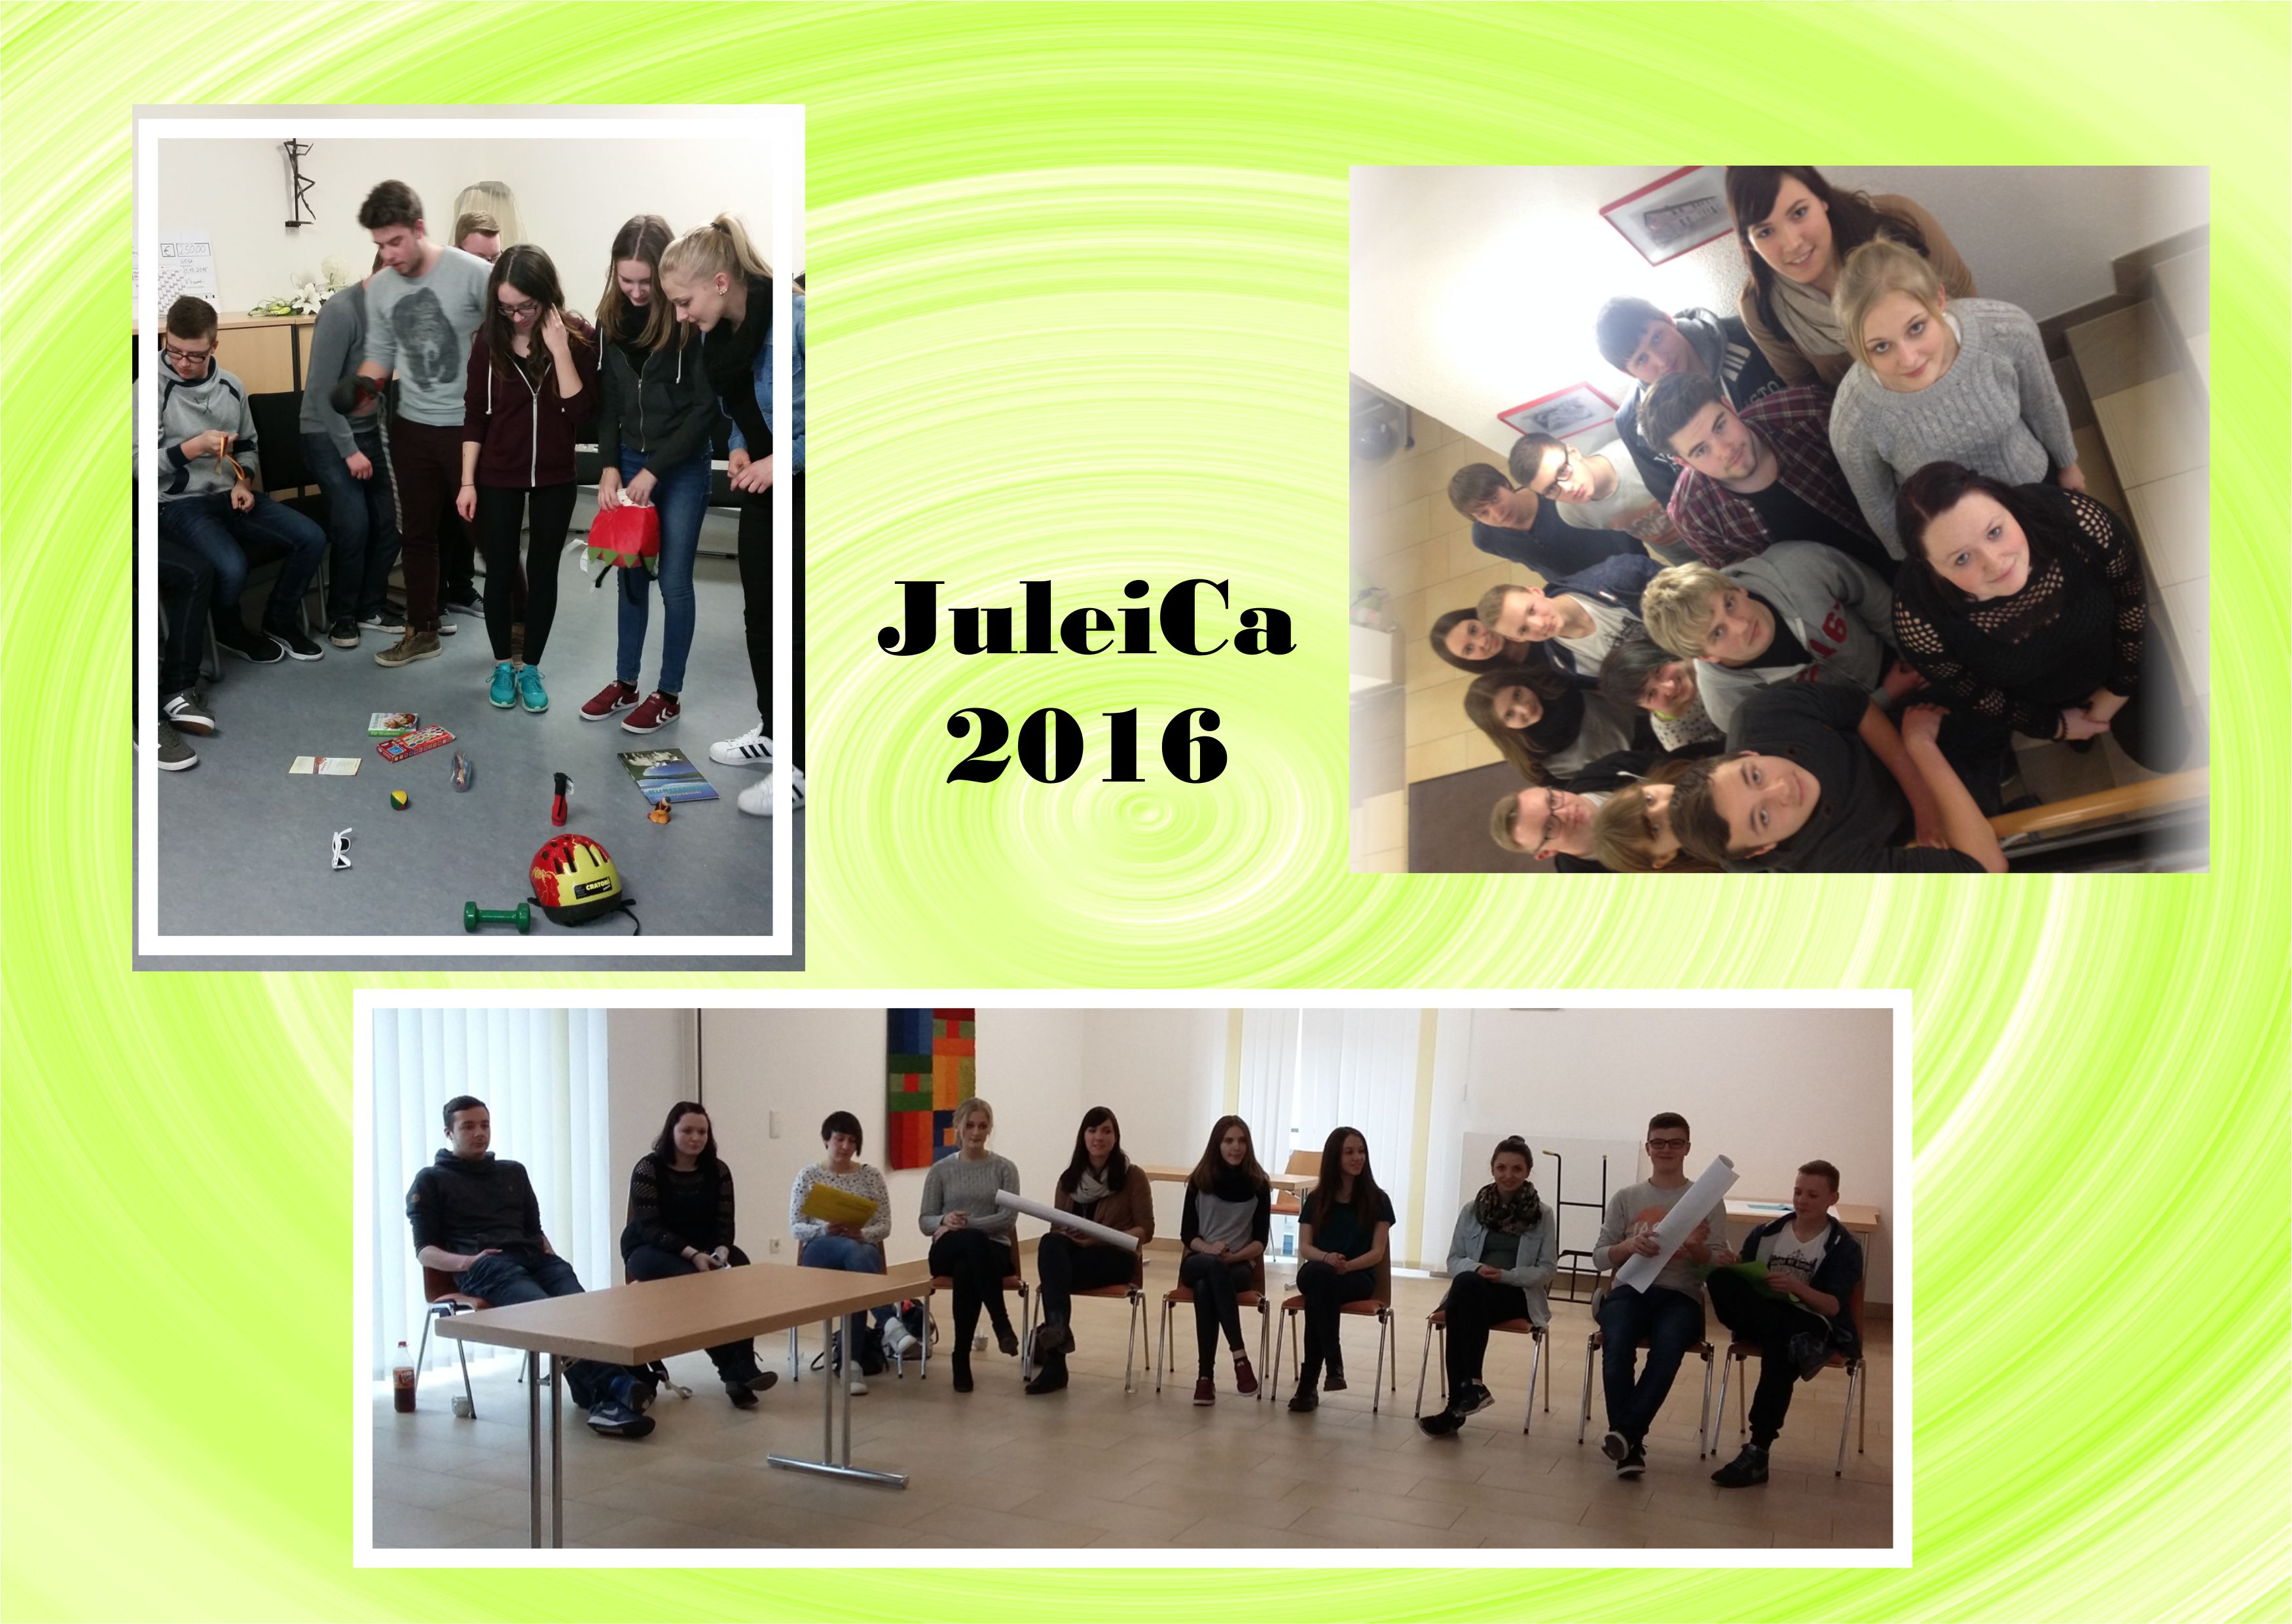 JuleiCa 2016 Collage